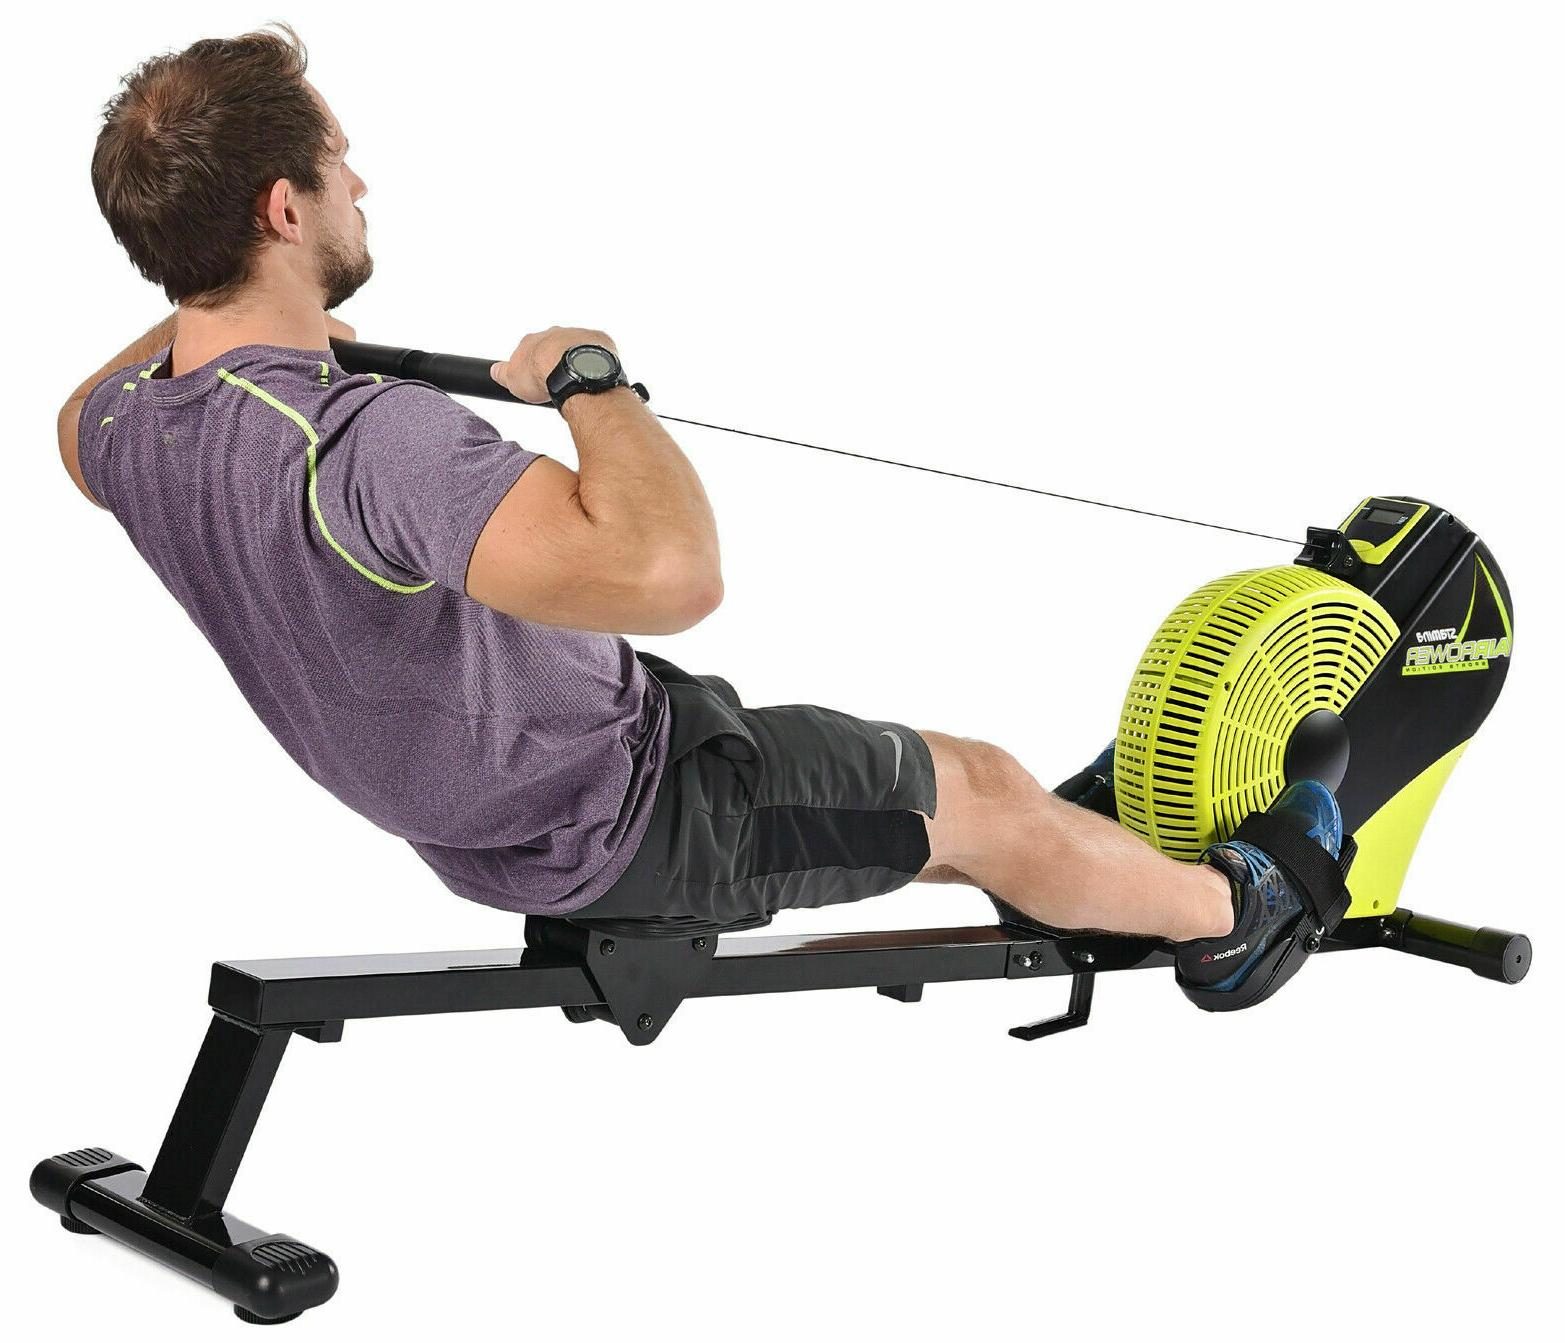 Stamina ROWER Cardio Exercise Rowing ATS NEW 2020